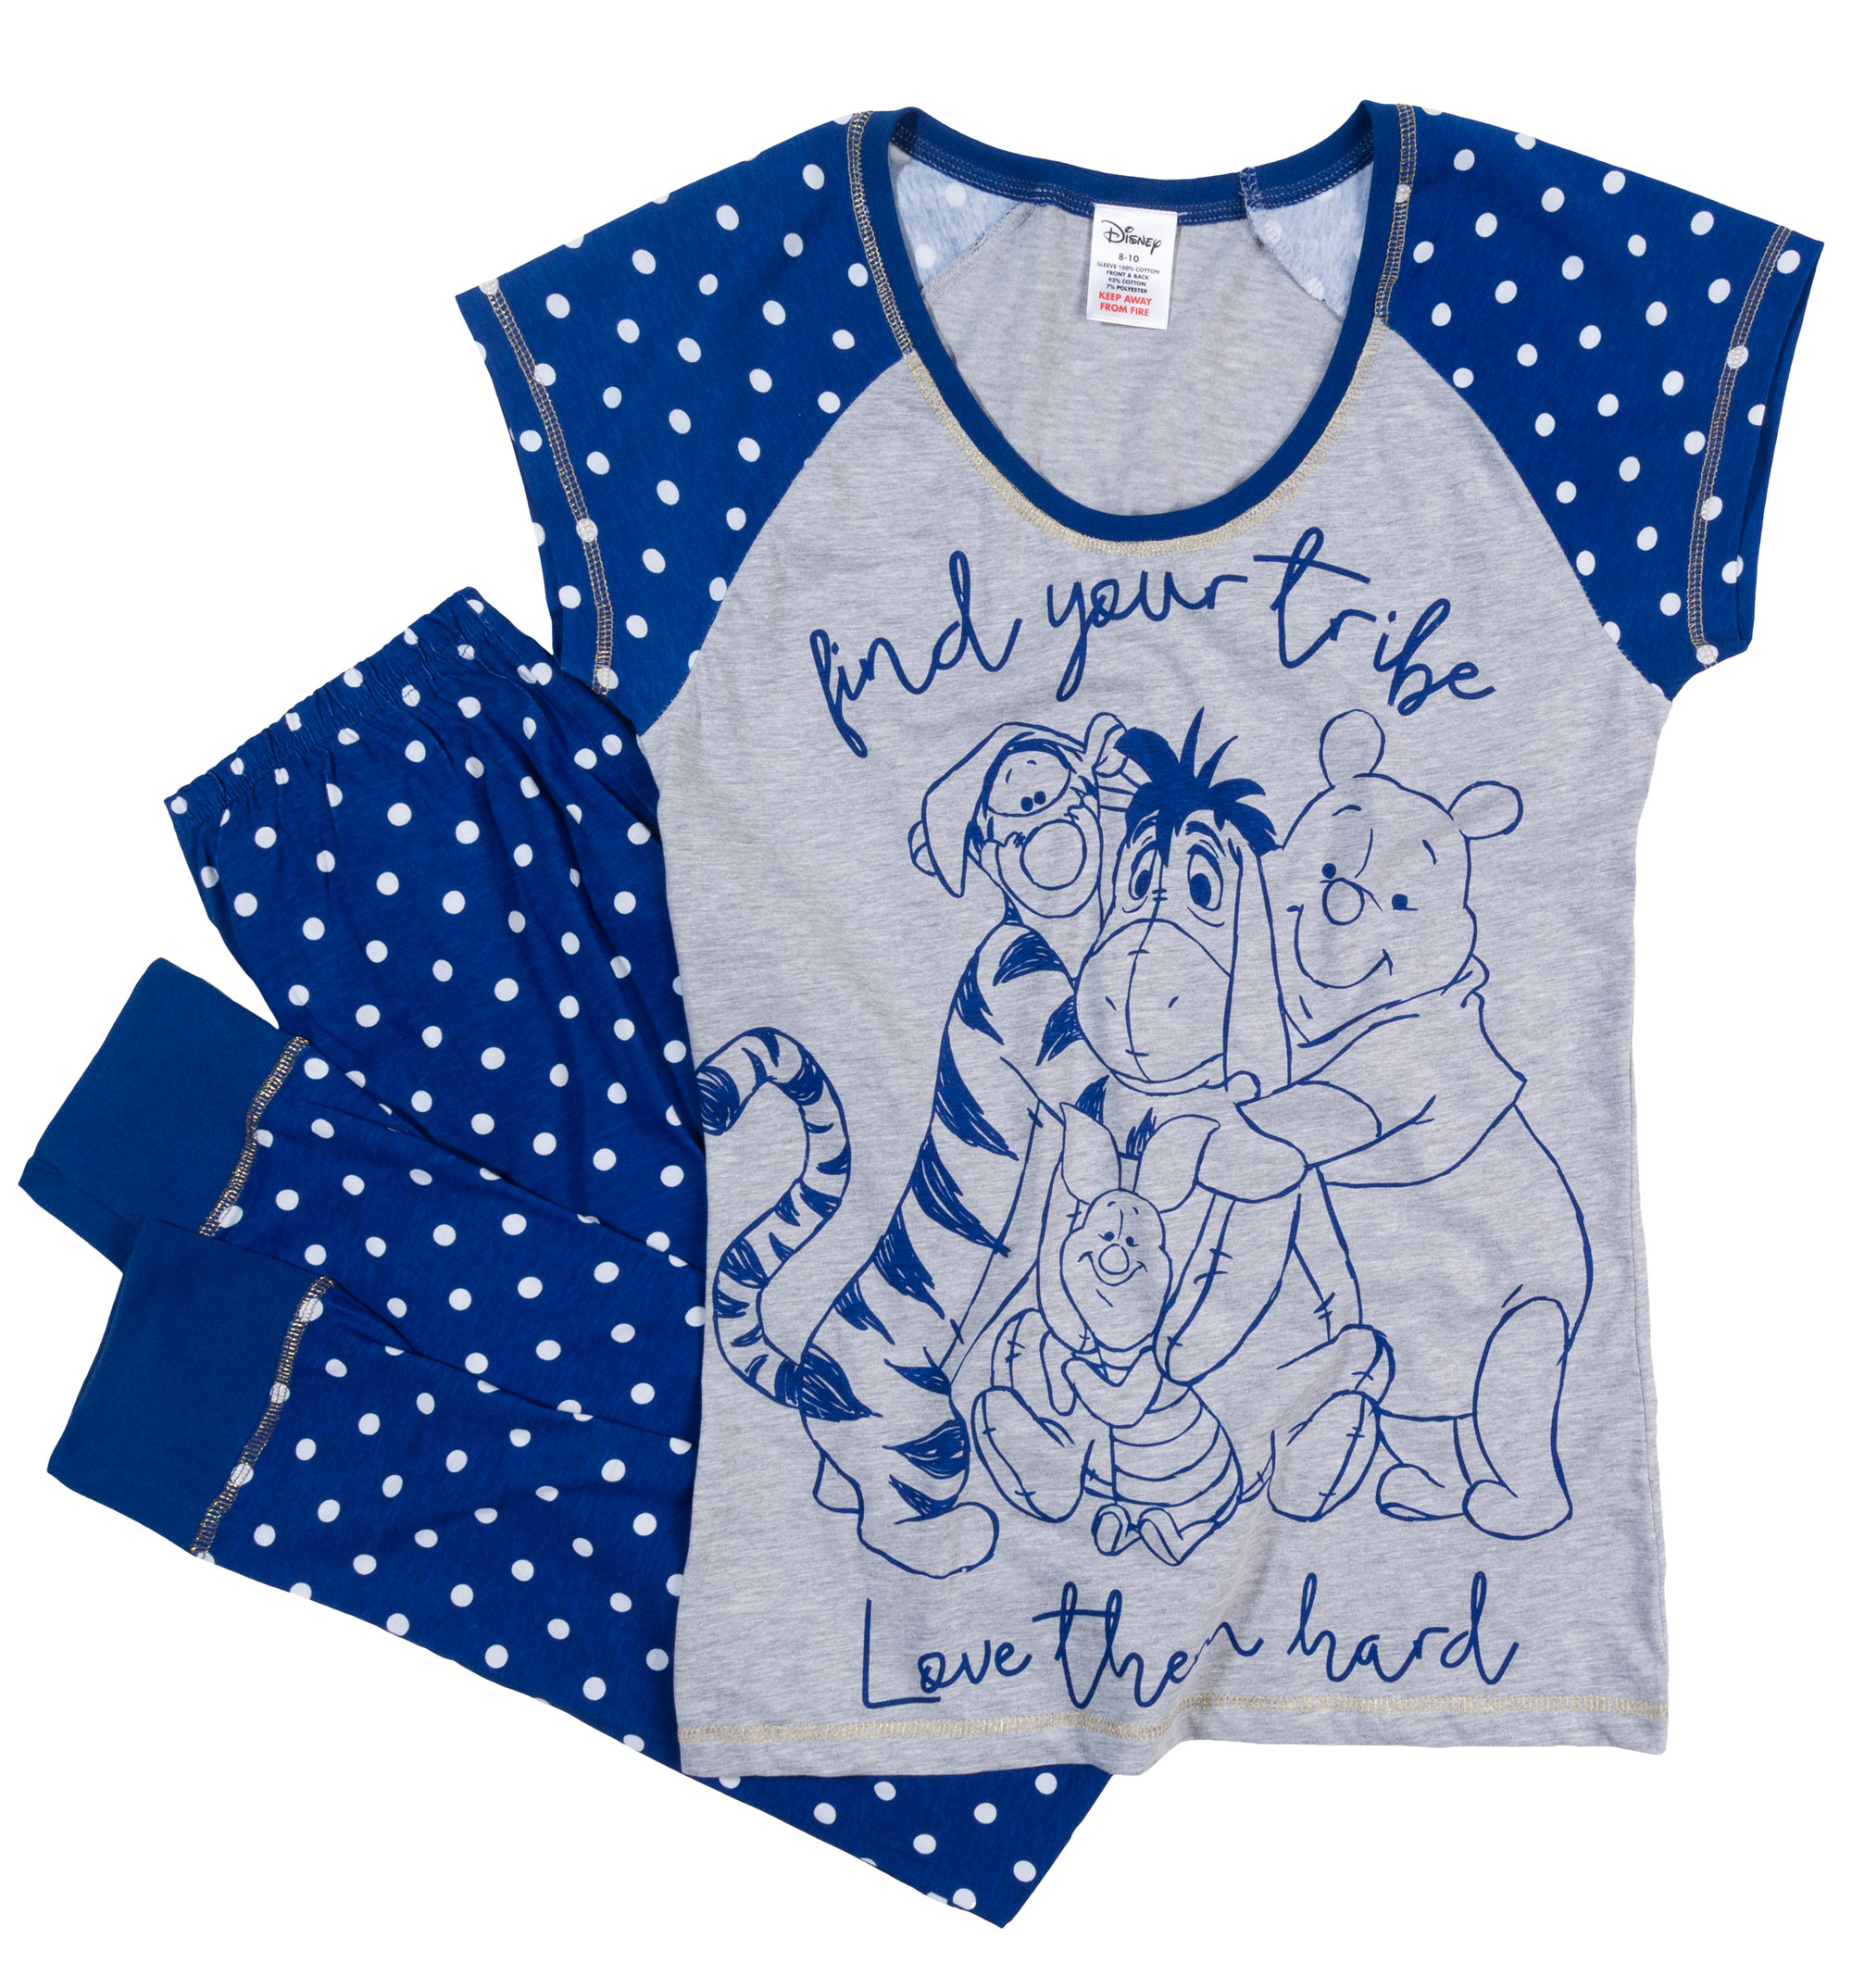 Women s Winnie The Pooh Find Your Tribe Pyjamas - Screen printed for a high  quality finish - Made from 100% cotton - Ringer style grey tee with polka  dot ... 0e9cd8faf5